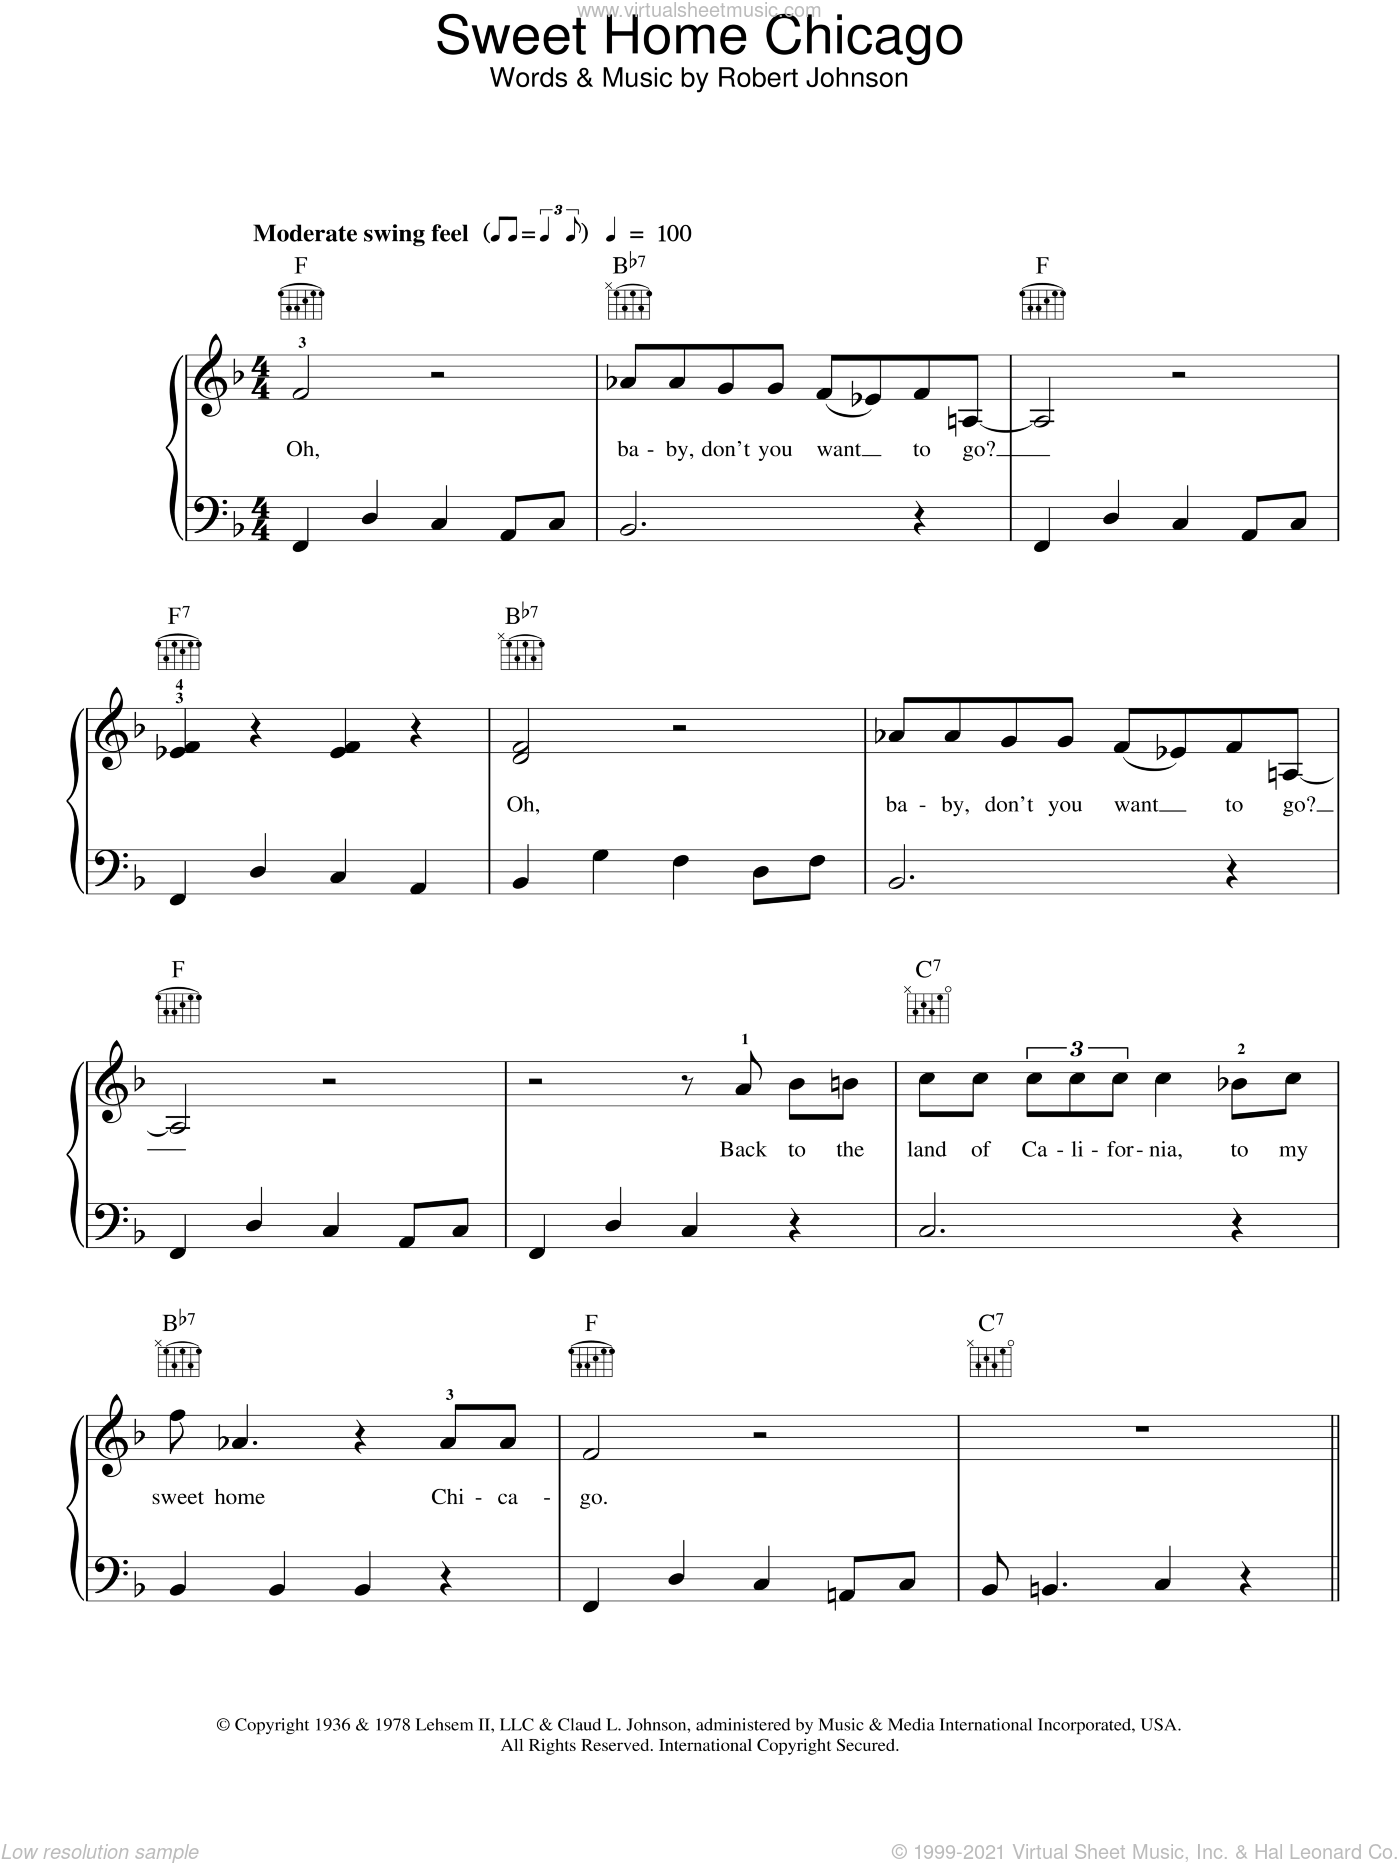 Sweet Home Chicago sheet music for piano solo by Robert Johnson